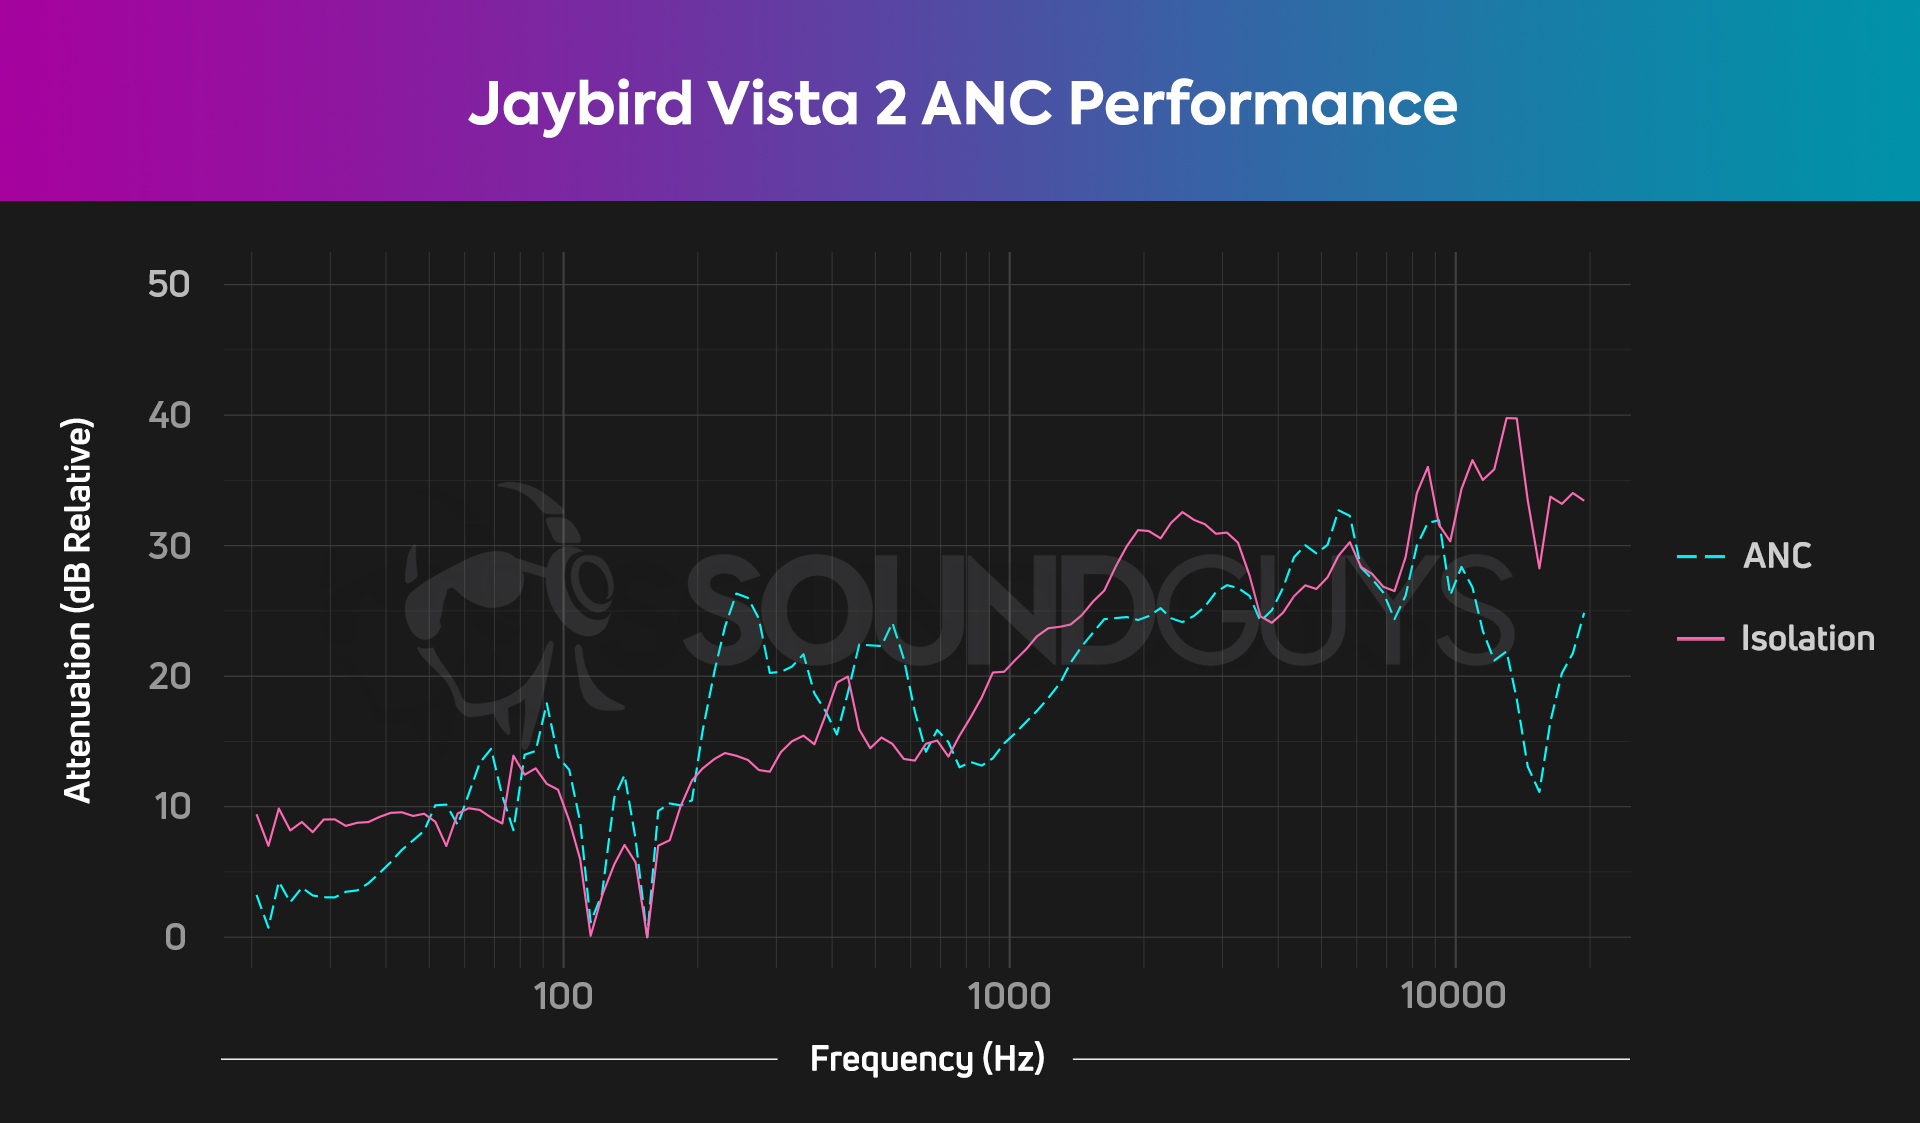 Chart showing frequency reduction from isolation and ANC on the Jaybird Vista 2